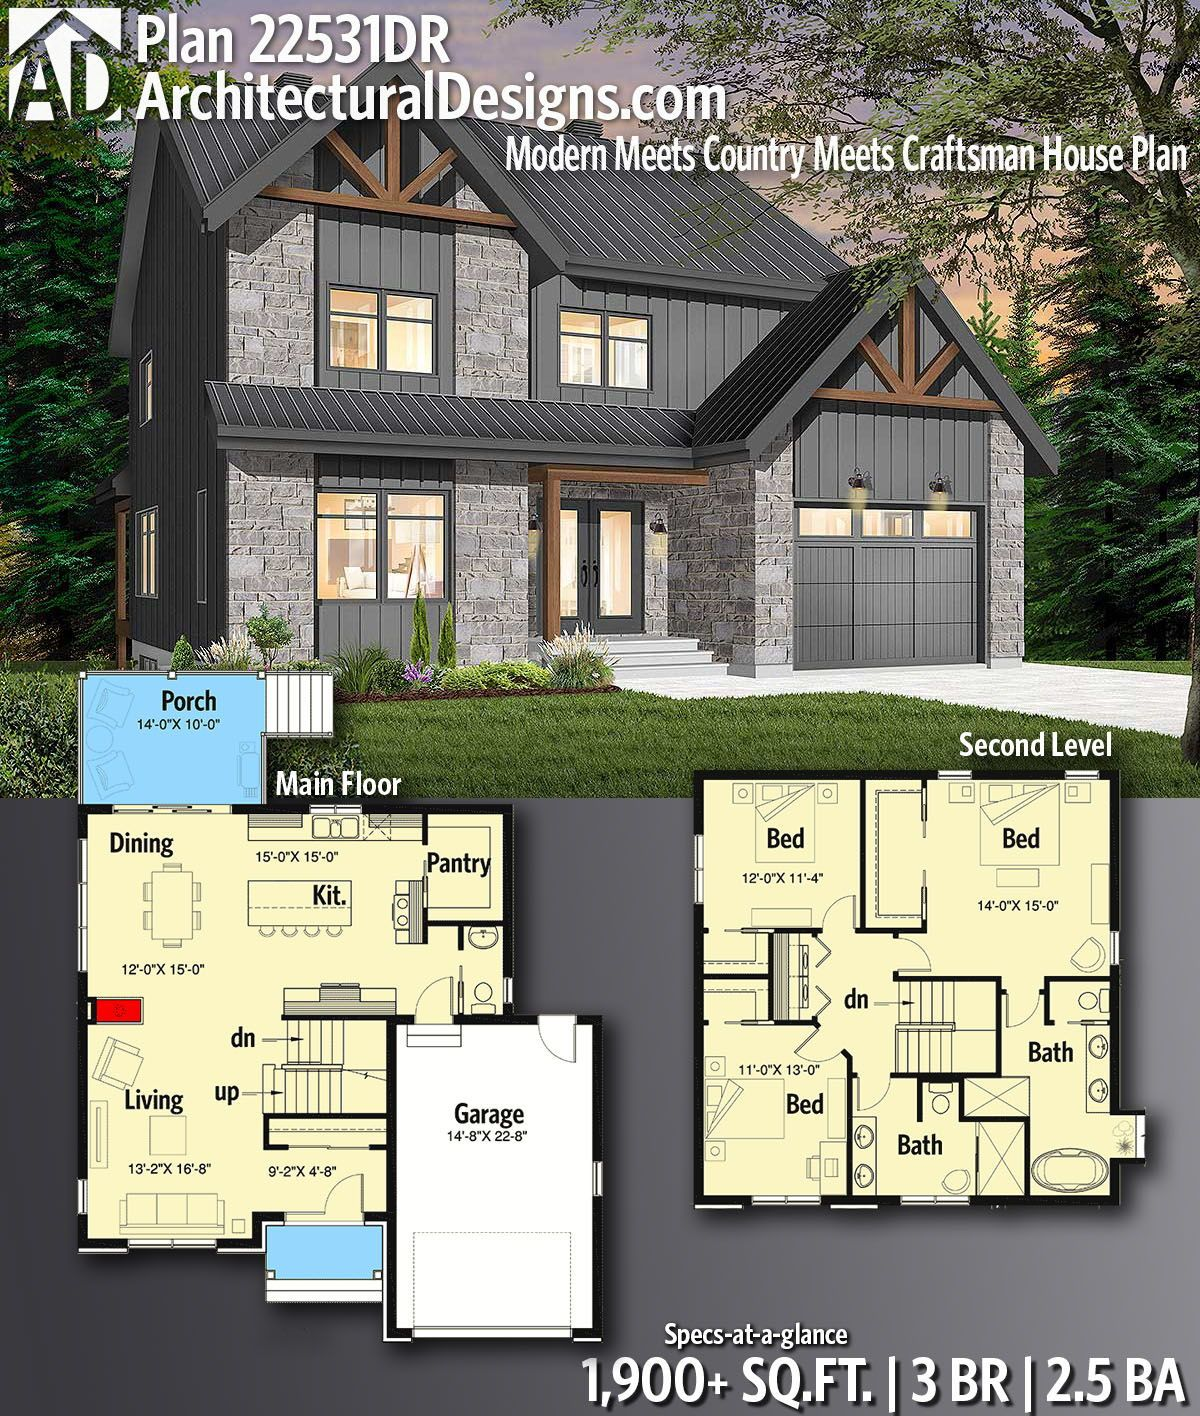 Plan 22531DR Modern Meets Country Meets Craftsman